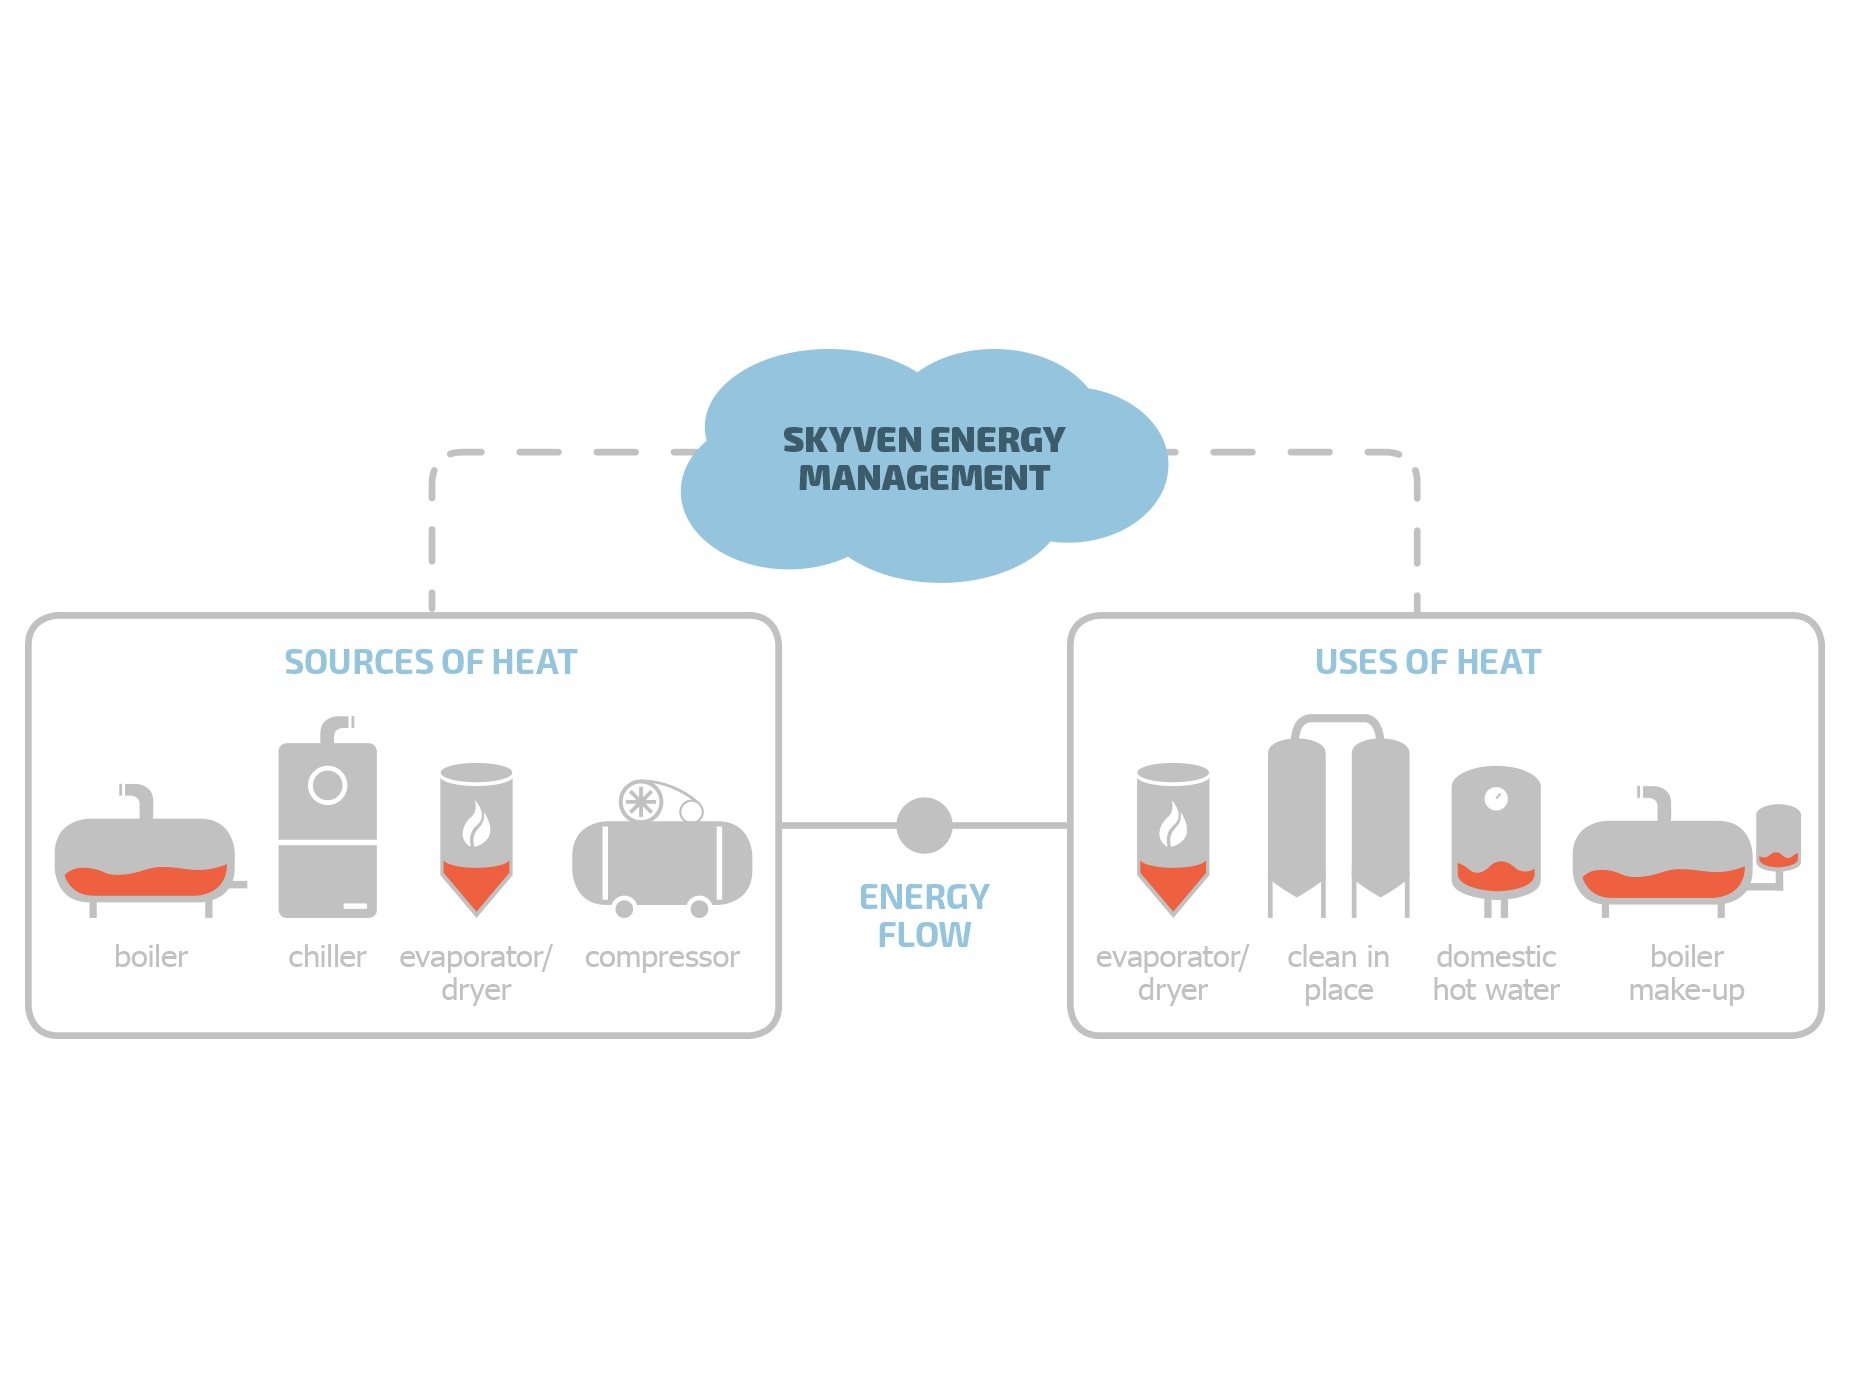 Features - Intelligent Heat RecoveryCaptures high value low temperature heat escaping from cooling towers and boiler exhaust and re-injects that heat back into the plantUltra Simplicity<add something here about how simple it is>The Power of DataArtificially intelligent monitoring and predictive analytics ensures reliability, providing peace of mindDirect Fuel CostEach BTU of recovered heat is one less BTU of new fuel burned.